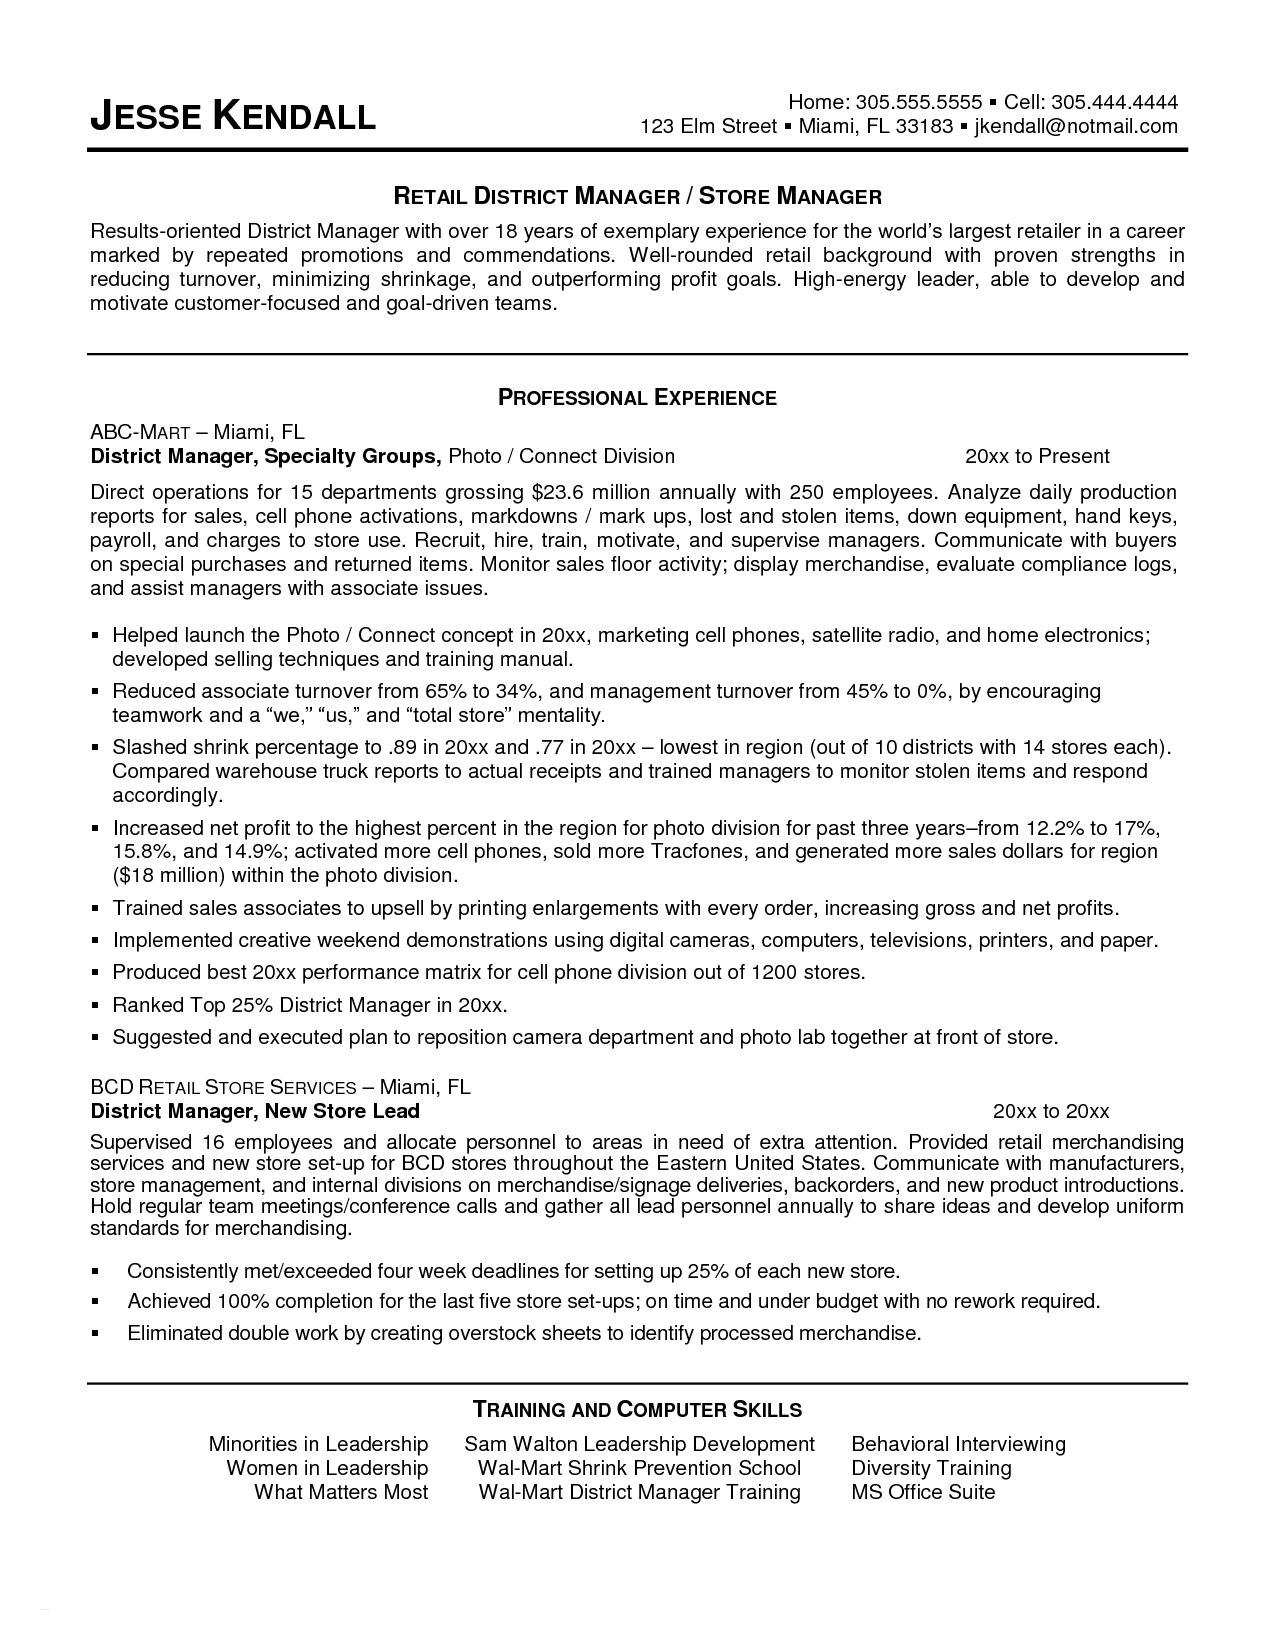 Cover Letter Template Retail Manager - Sample Retail Resume 21 Lovely Retail Manager Resume Roddyschrock